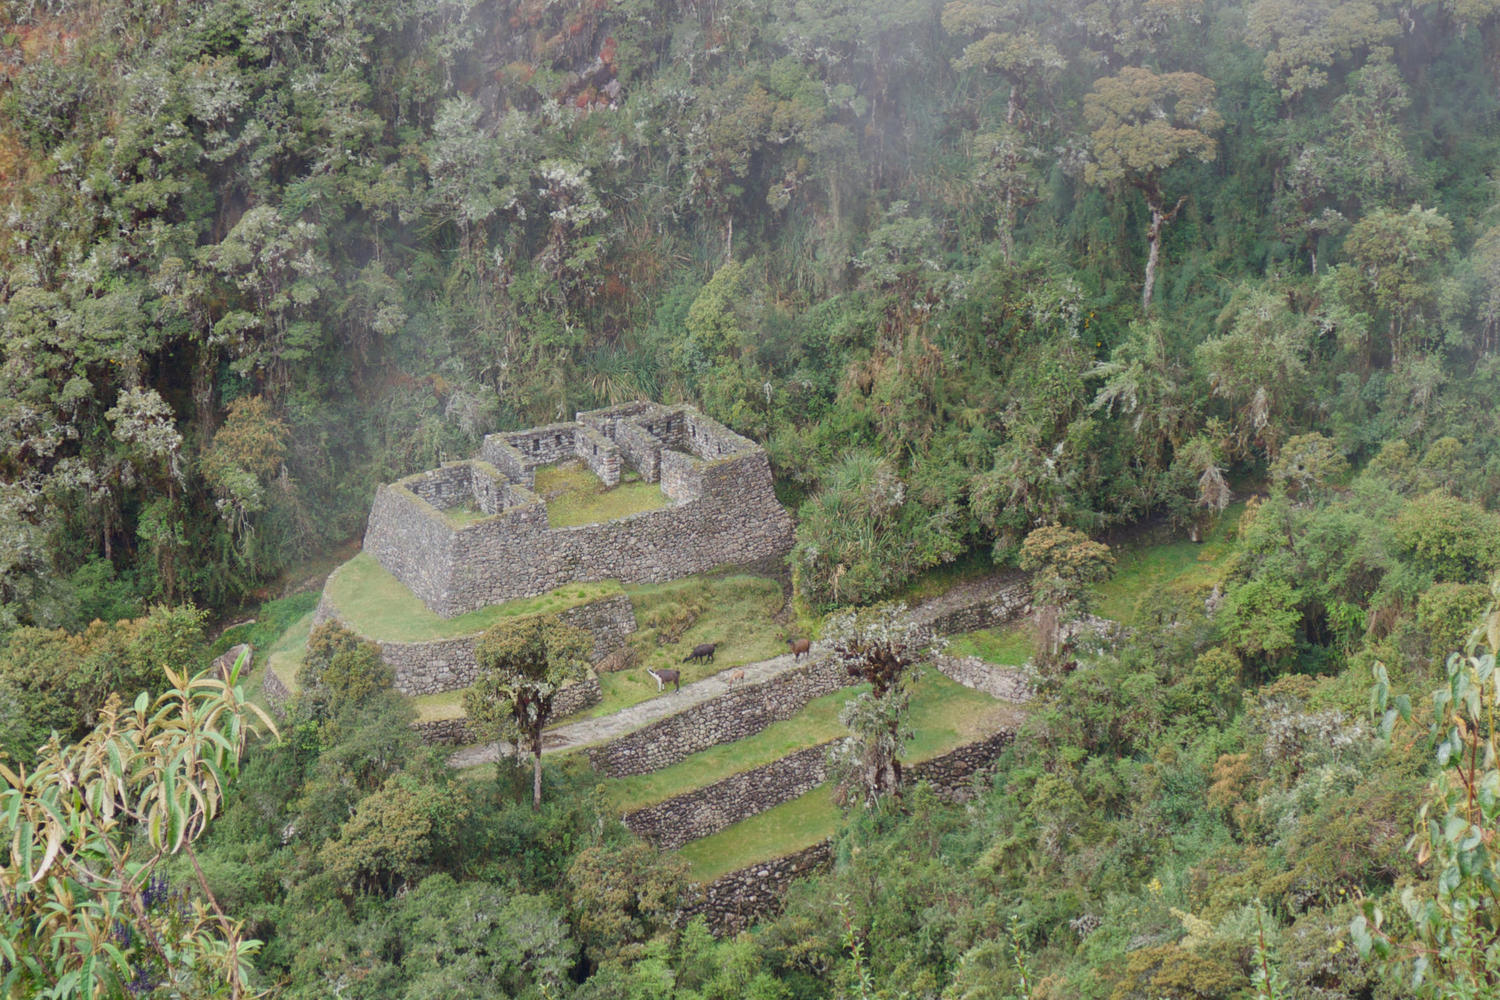 Ruins and llamas in the cloud forest near to Chaquicocha, on the third day of the Inca Trail